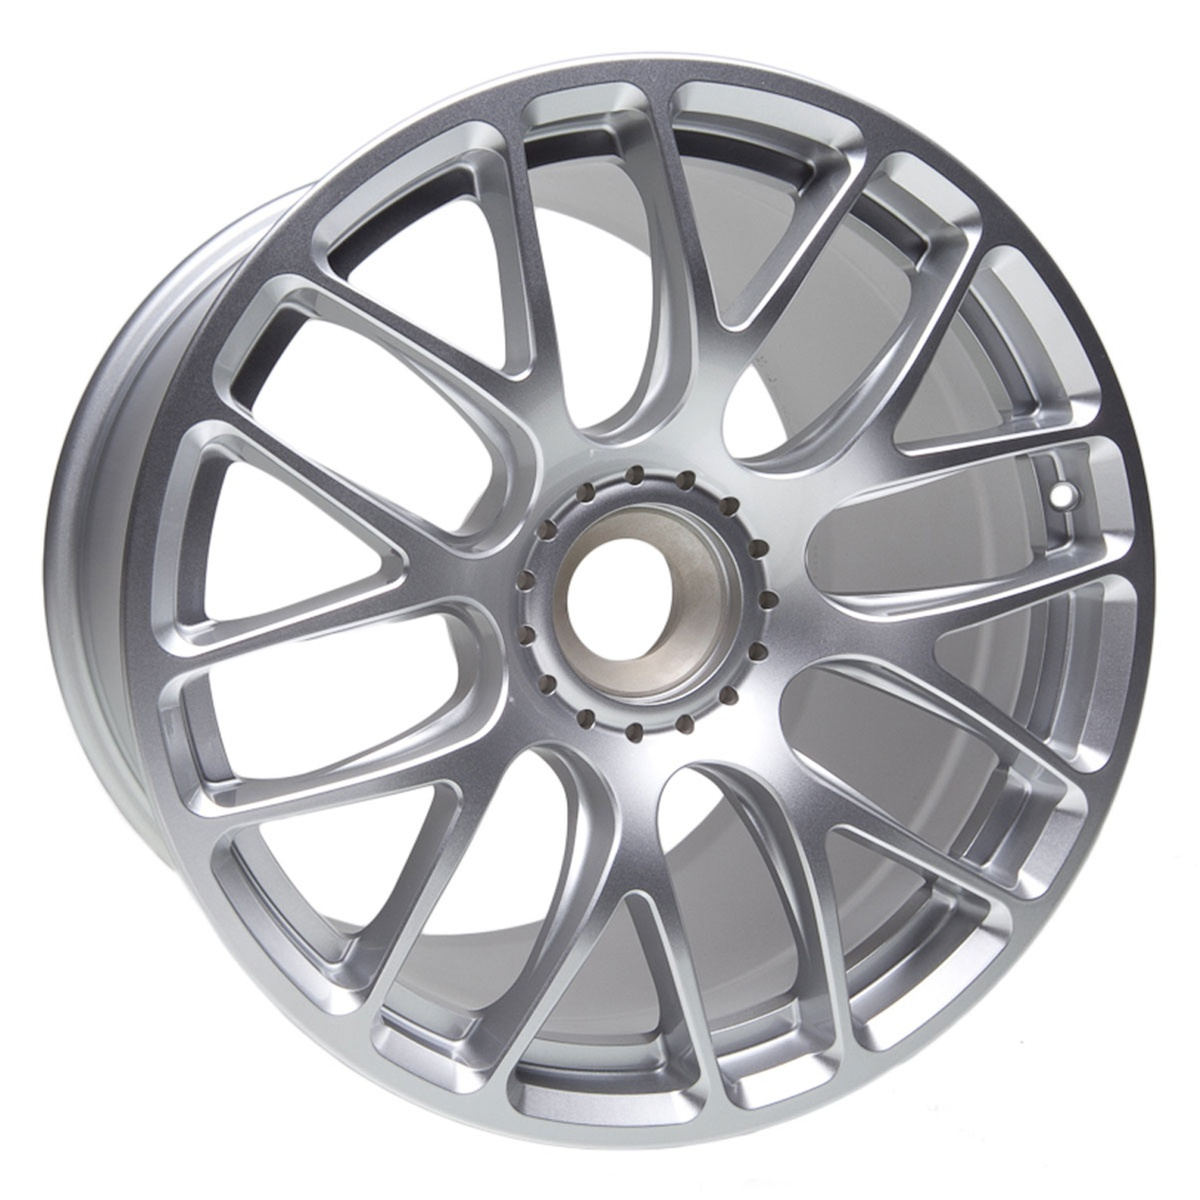 Champion Motorsport Mm20 Forged Magnesium Wheel Centerlock